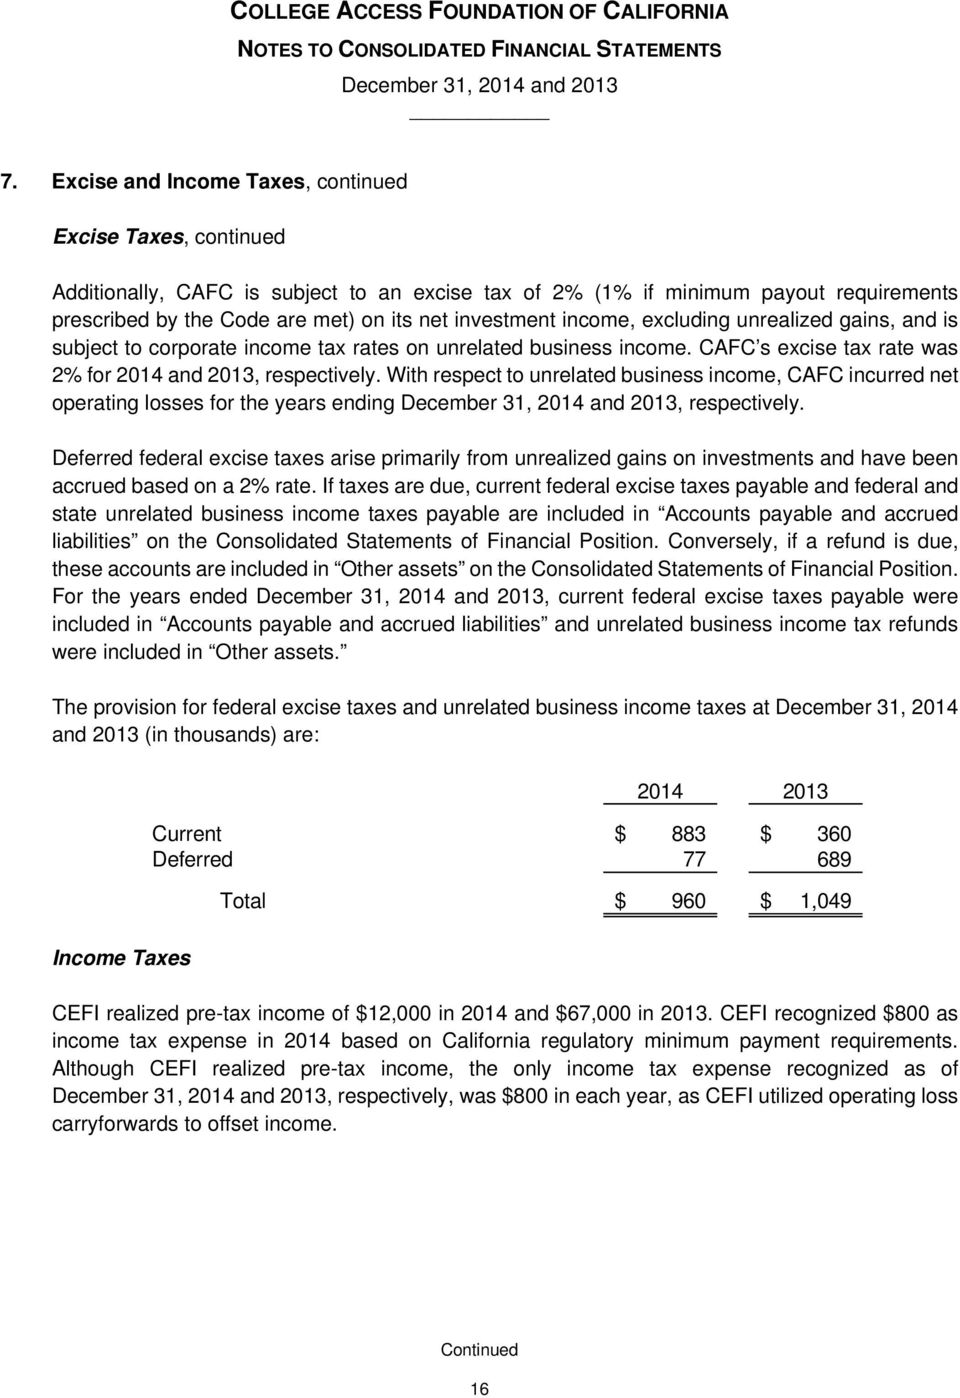 With respect to unrelated business income, CAFC incurred net operating losses for the years ending, respectively.